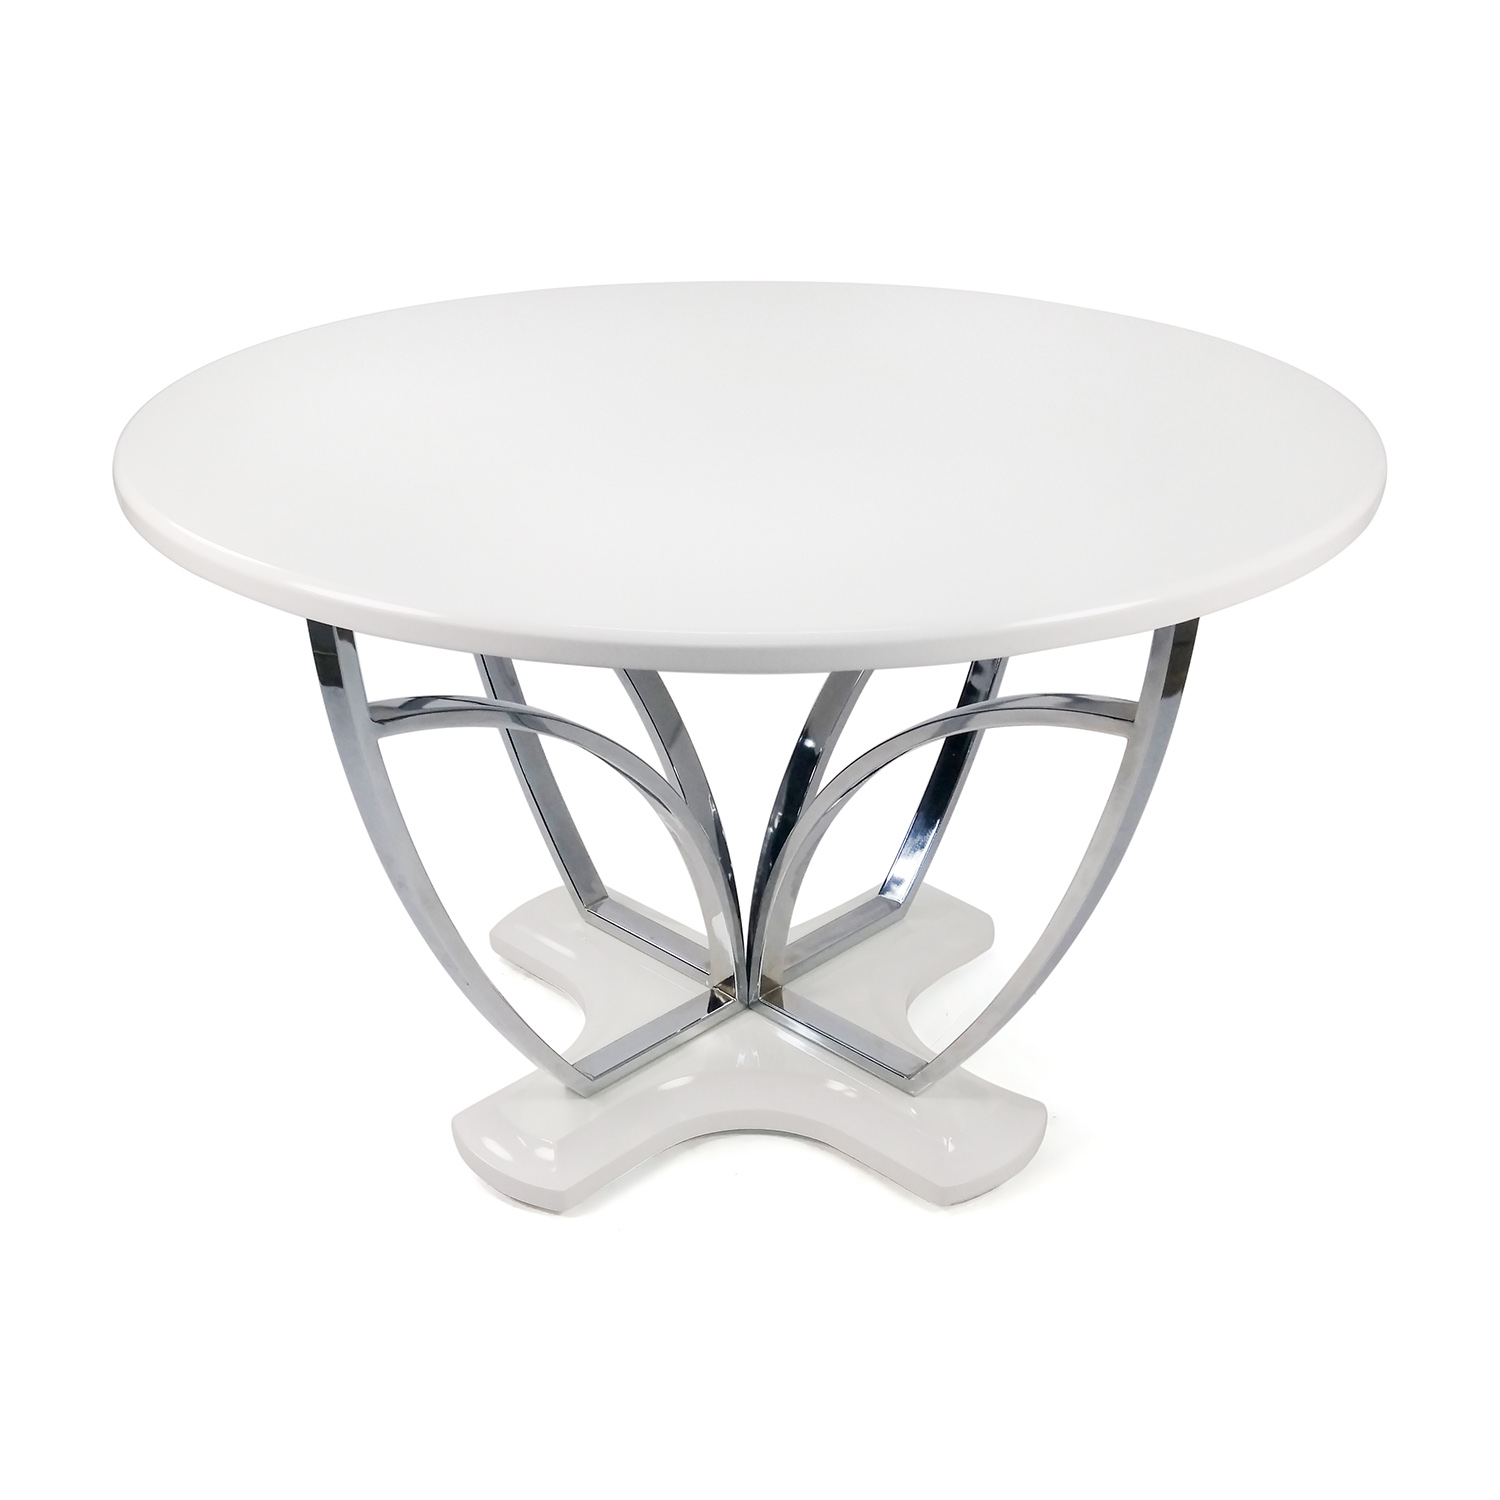 Standard Furniture Meridian White Round Table dimensions